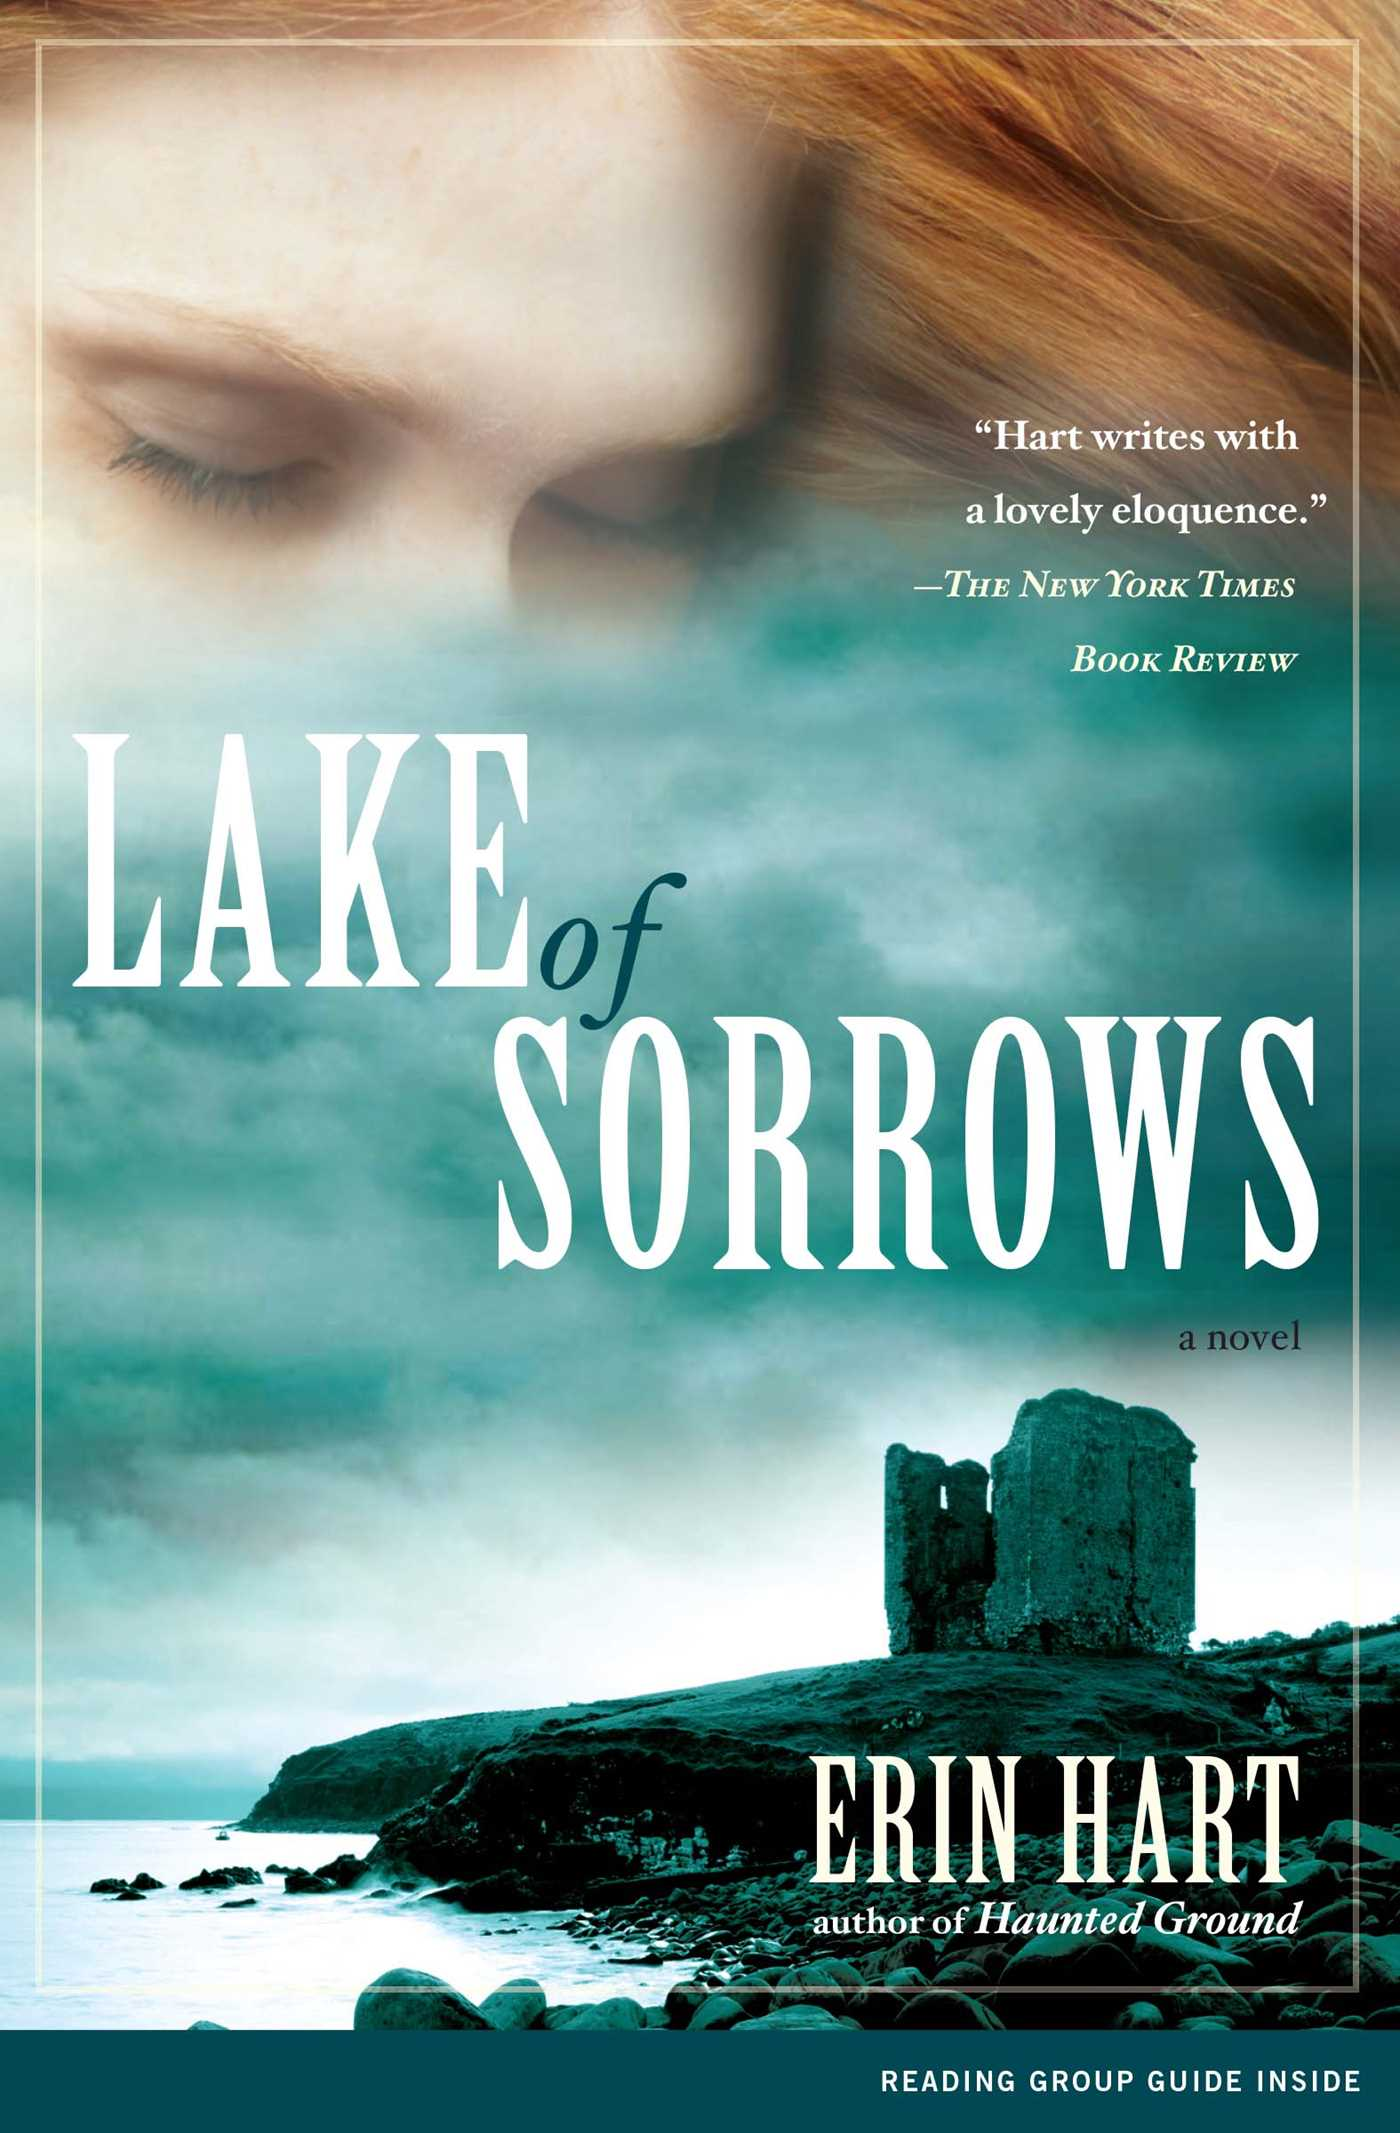 Lake-of-sorrows-9781416531920_hr